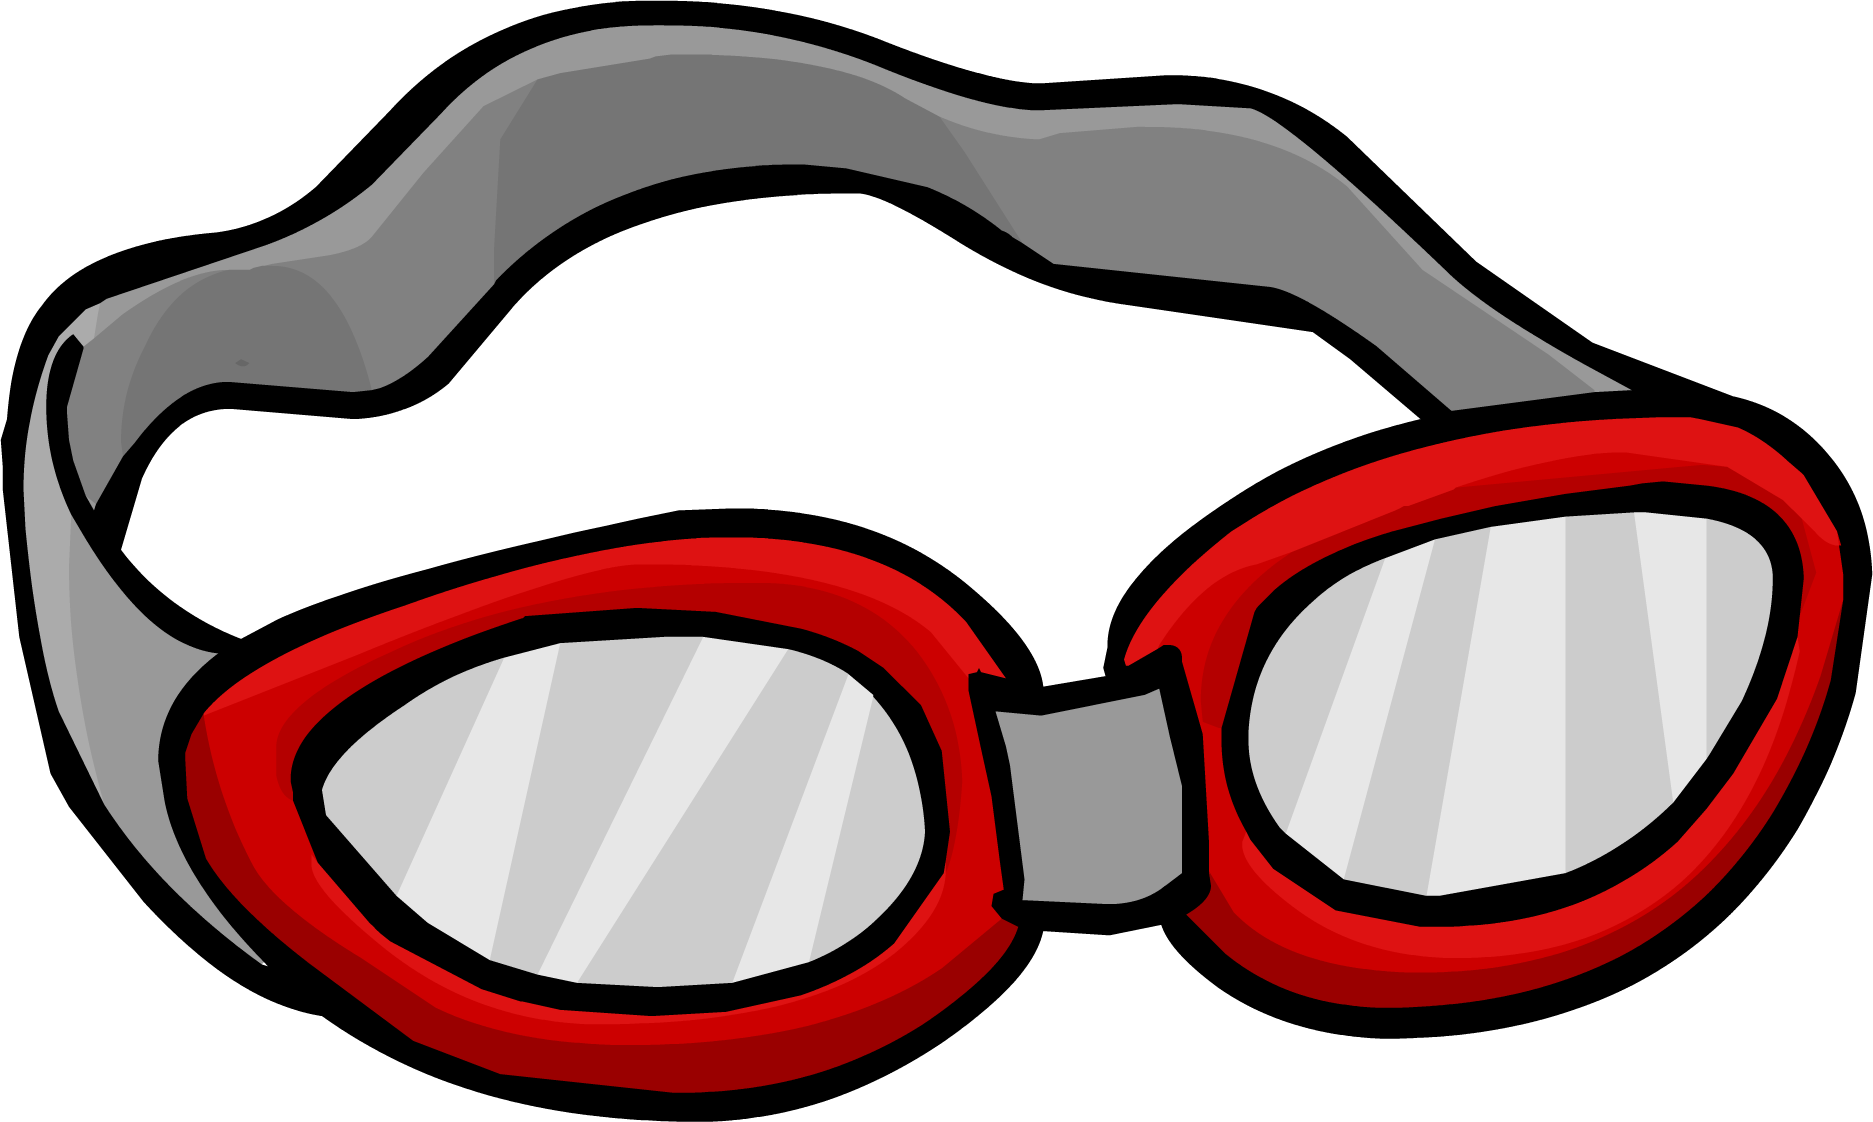 Free Swim Goggles Clipart Black And White, Download Free.